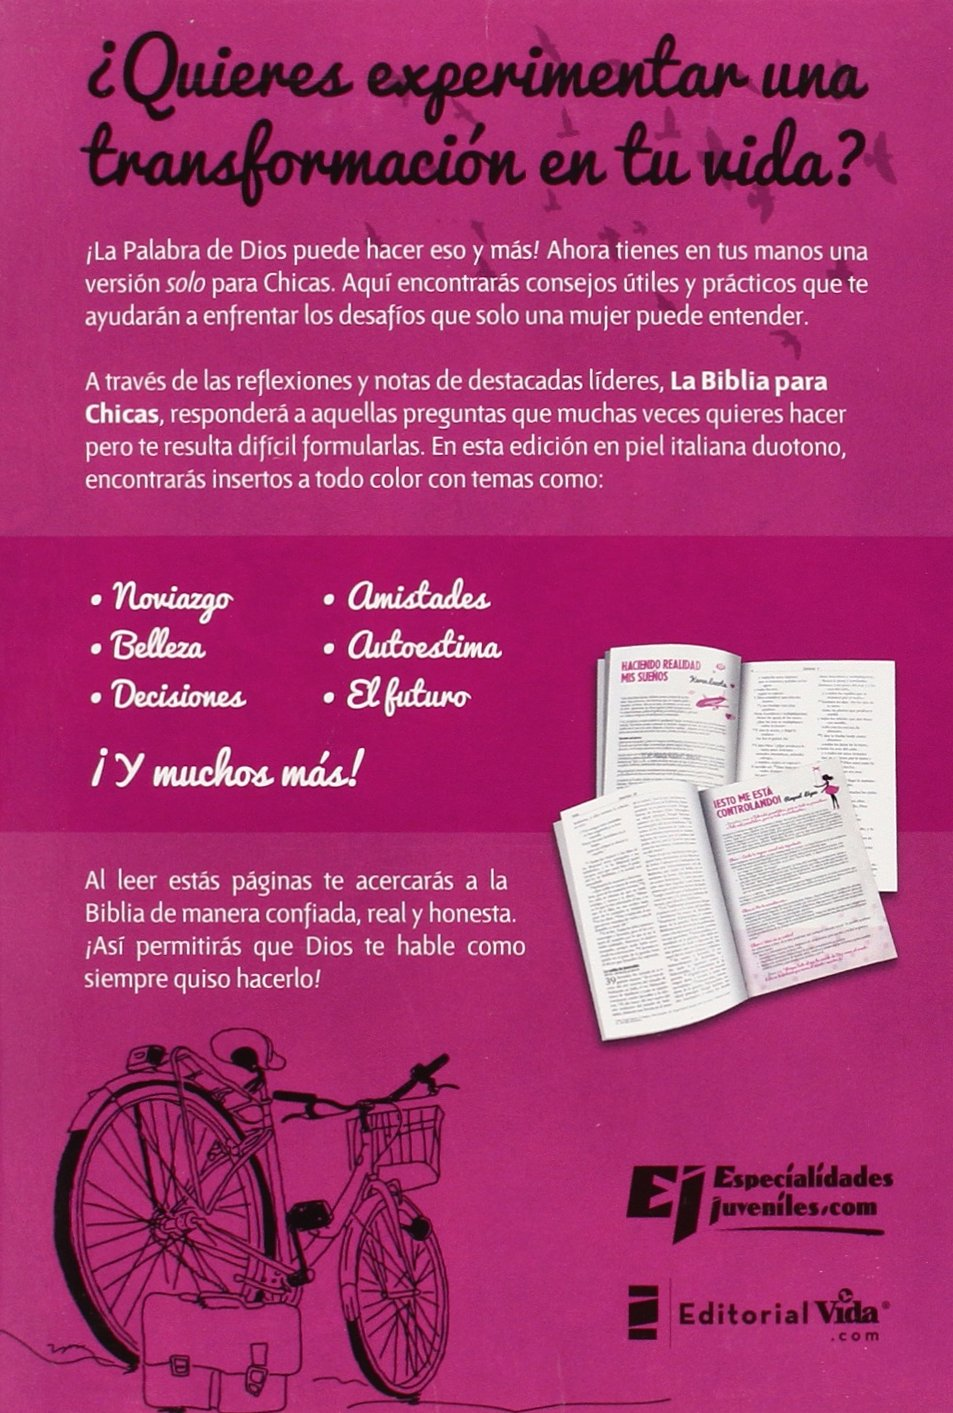 Santa Biblia para chicas NVI (Especialidades Juveniles) (Spanish Edition): Zondervan: 9780829765632: Amazon.com: Books